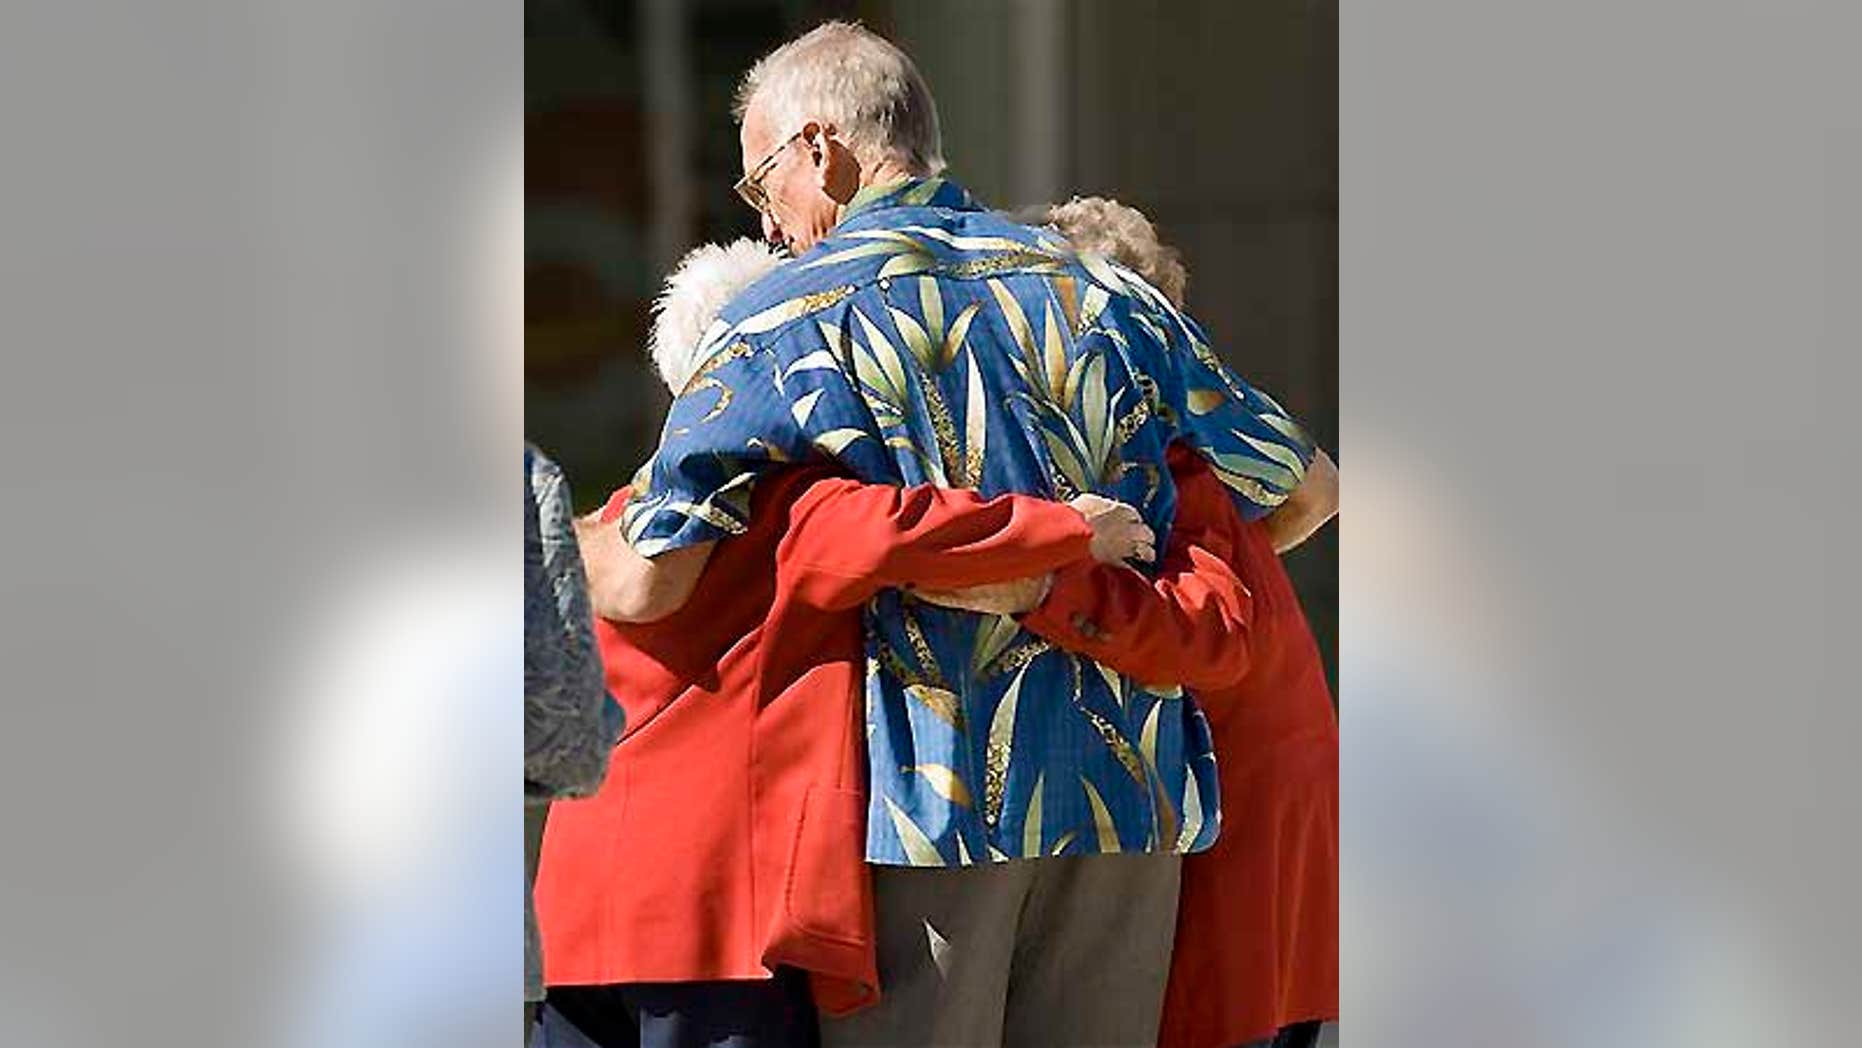 Two red-coated ushers at televangelist Robert H. Schuller's Crystal Catherdral get a hug after witnessing a man shoot himself in the church.